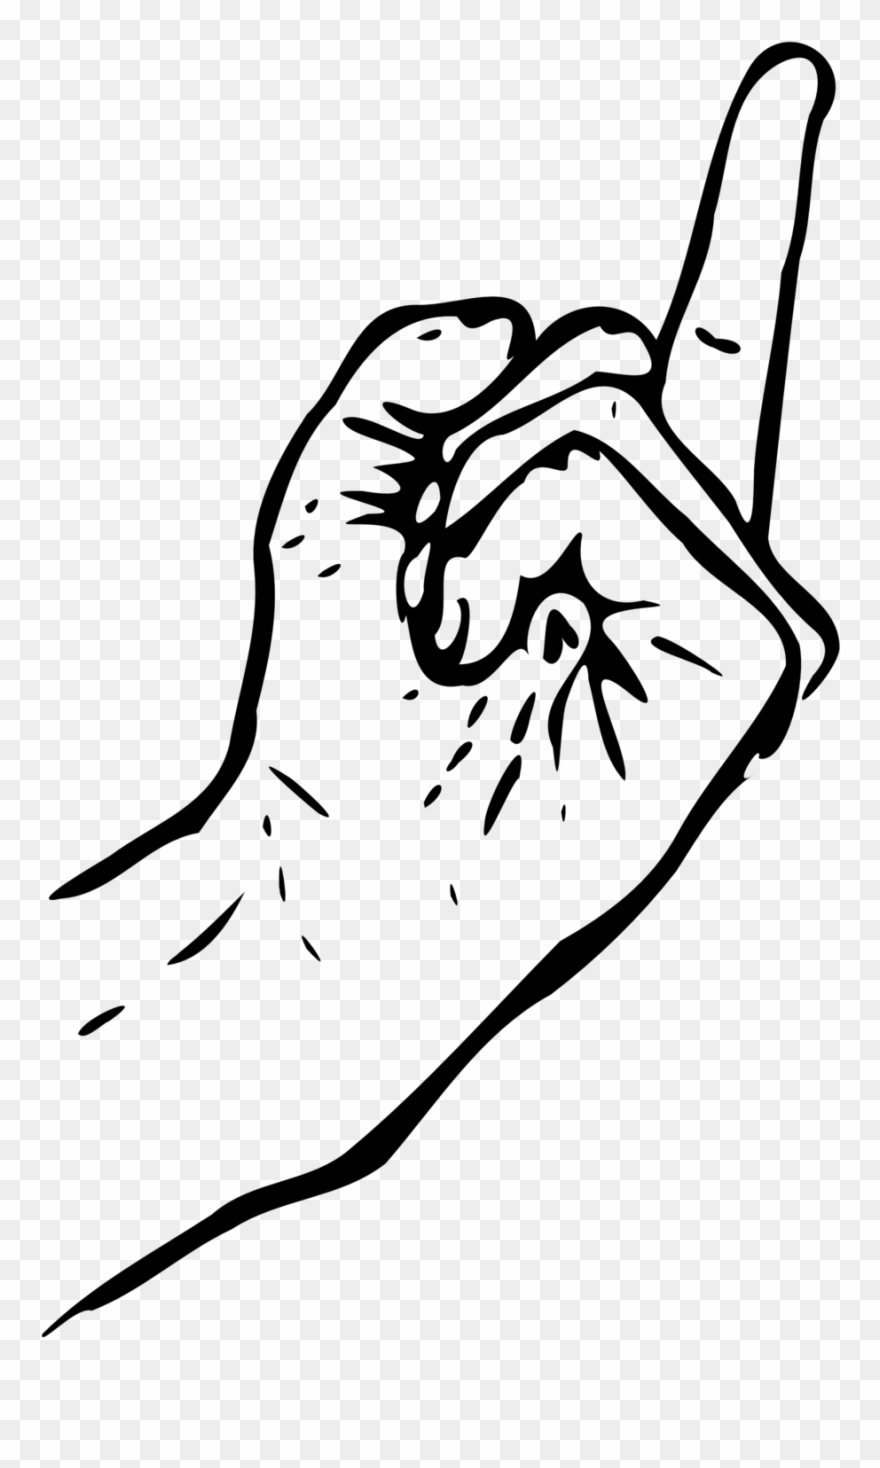 Fingers clipart drawing, Fingers drawing Transparent FREE ...